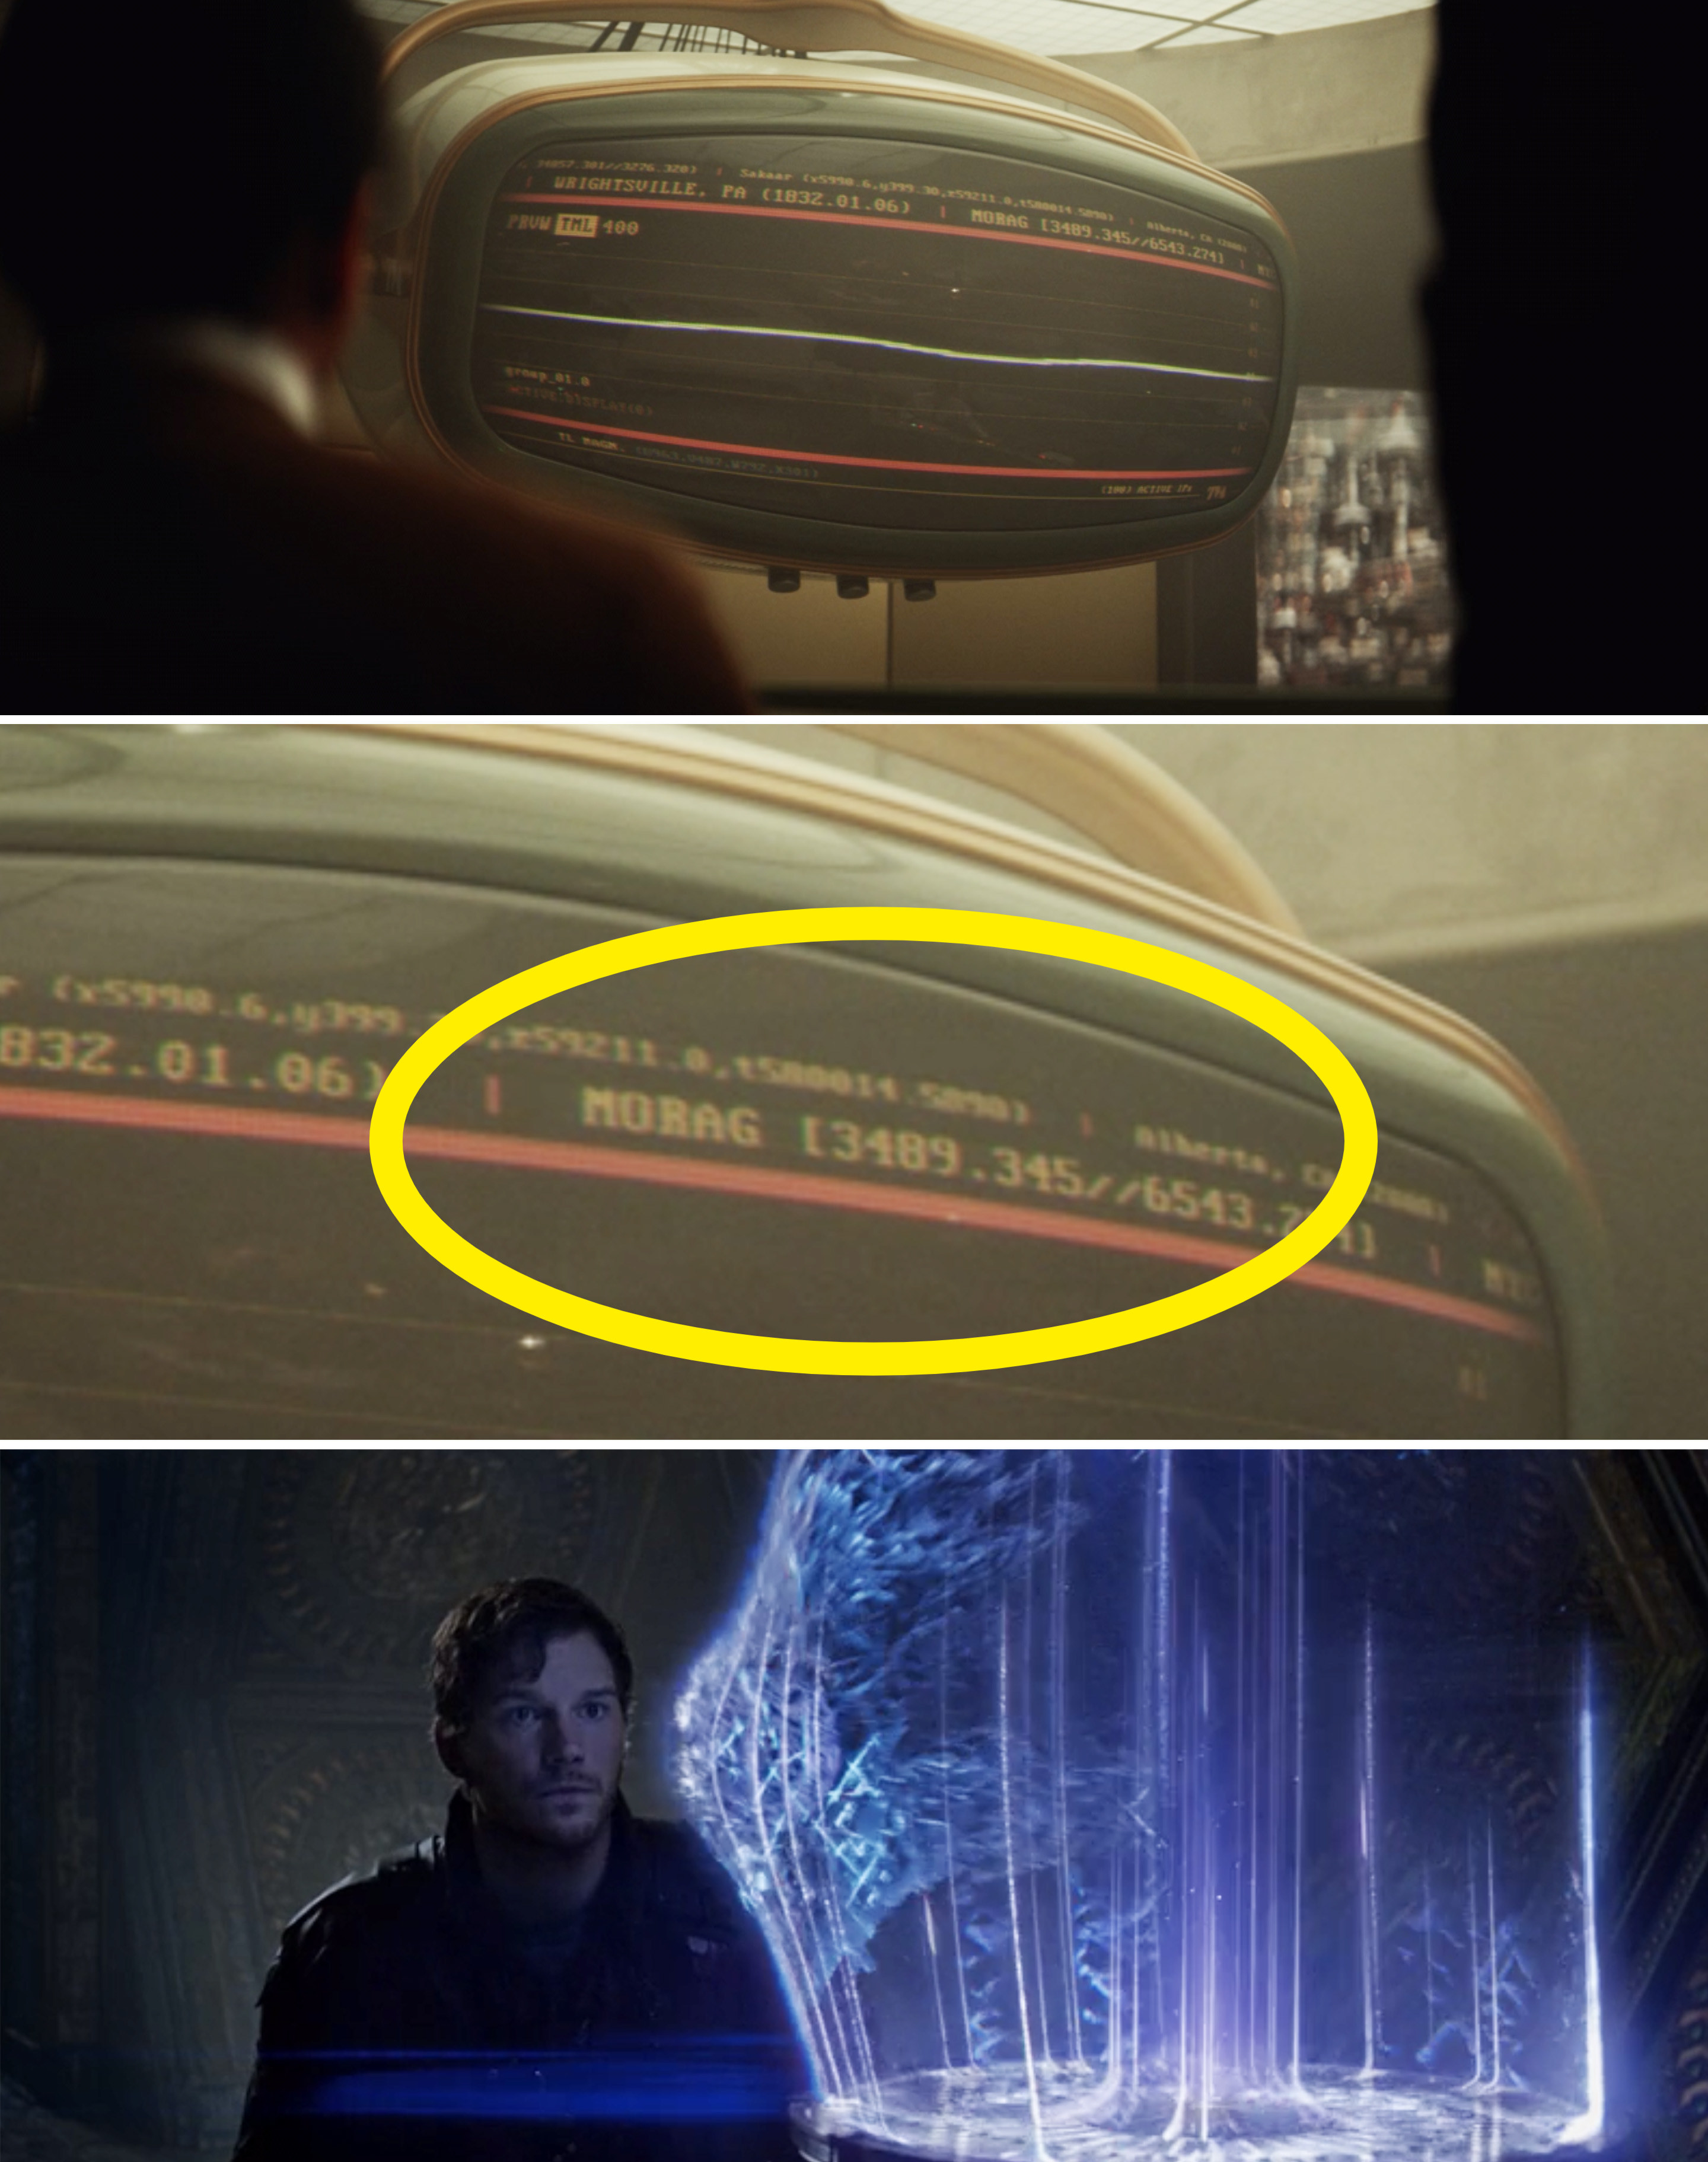 """A close-up of a monitor reading, """"Morag"""" vs. Peter Quill getting the Orb"""